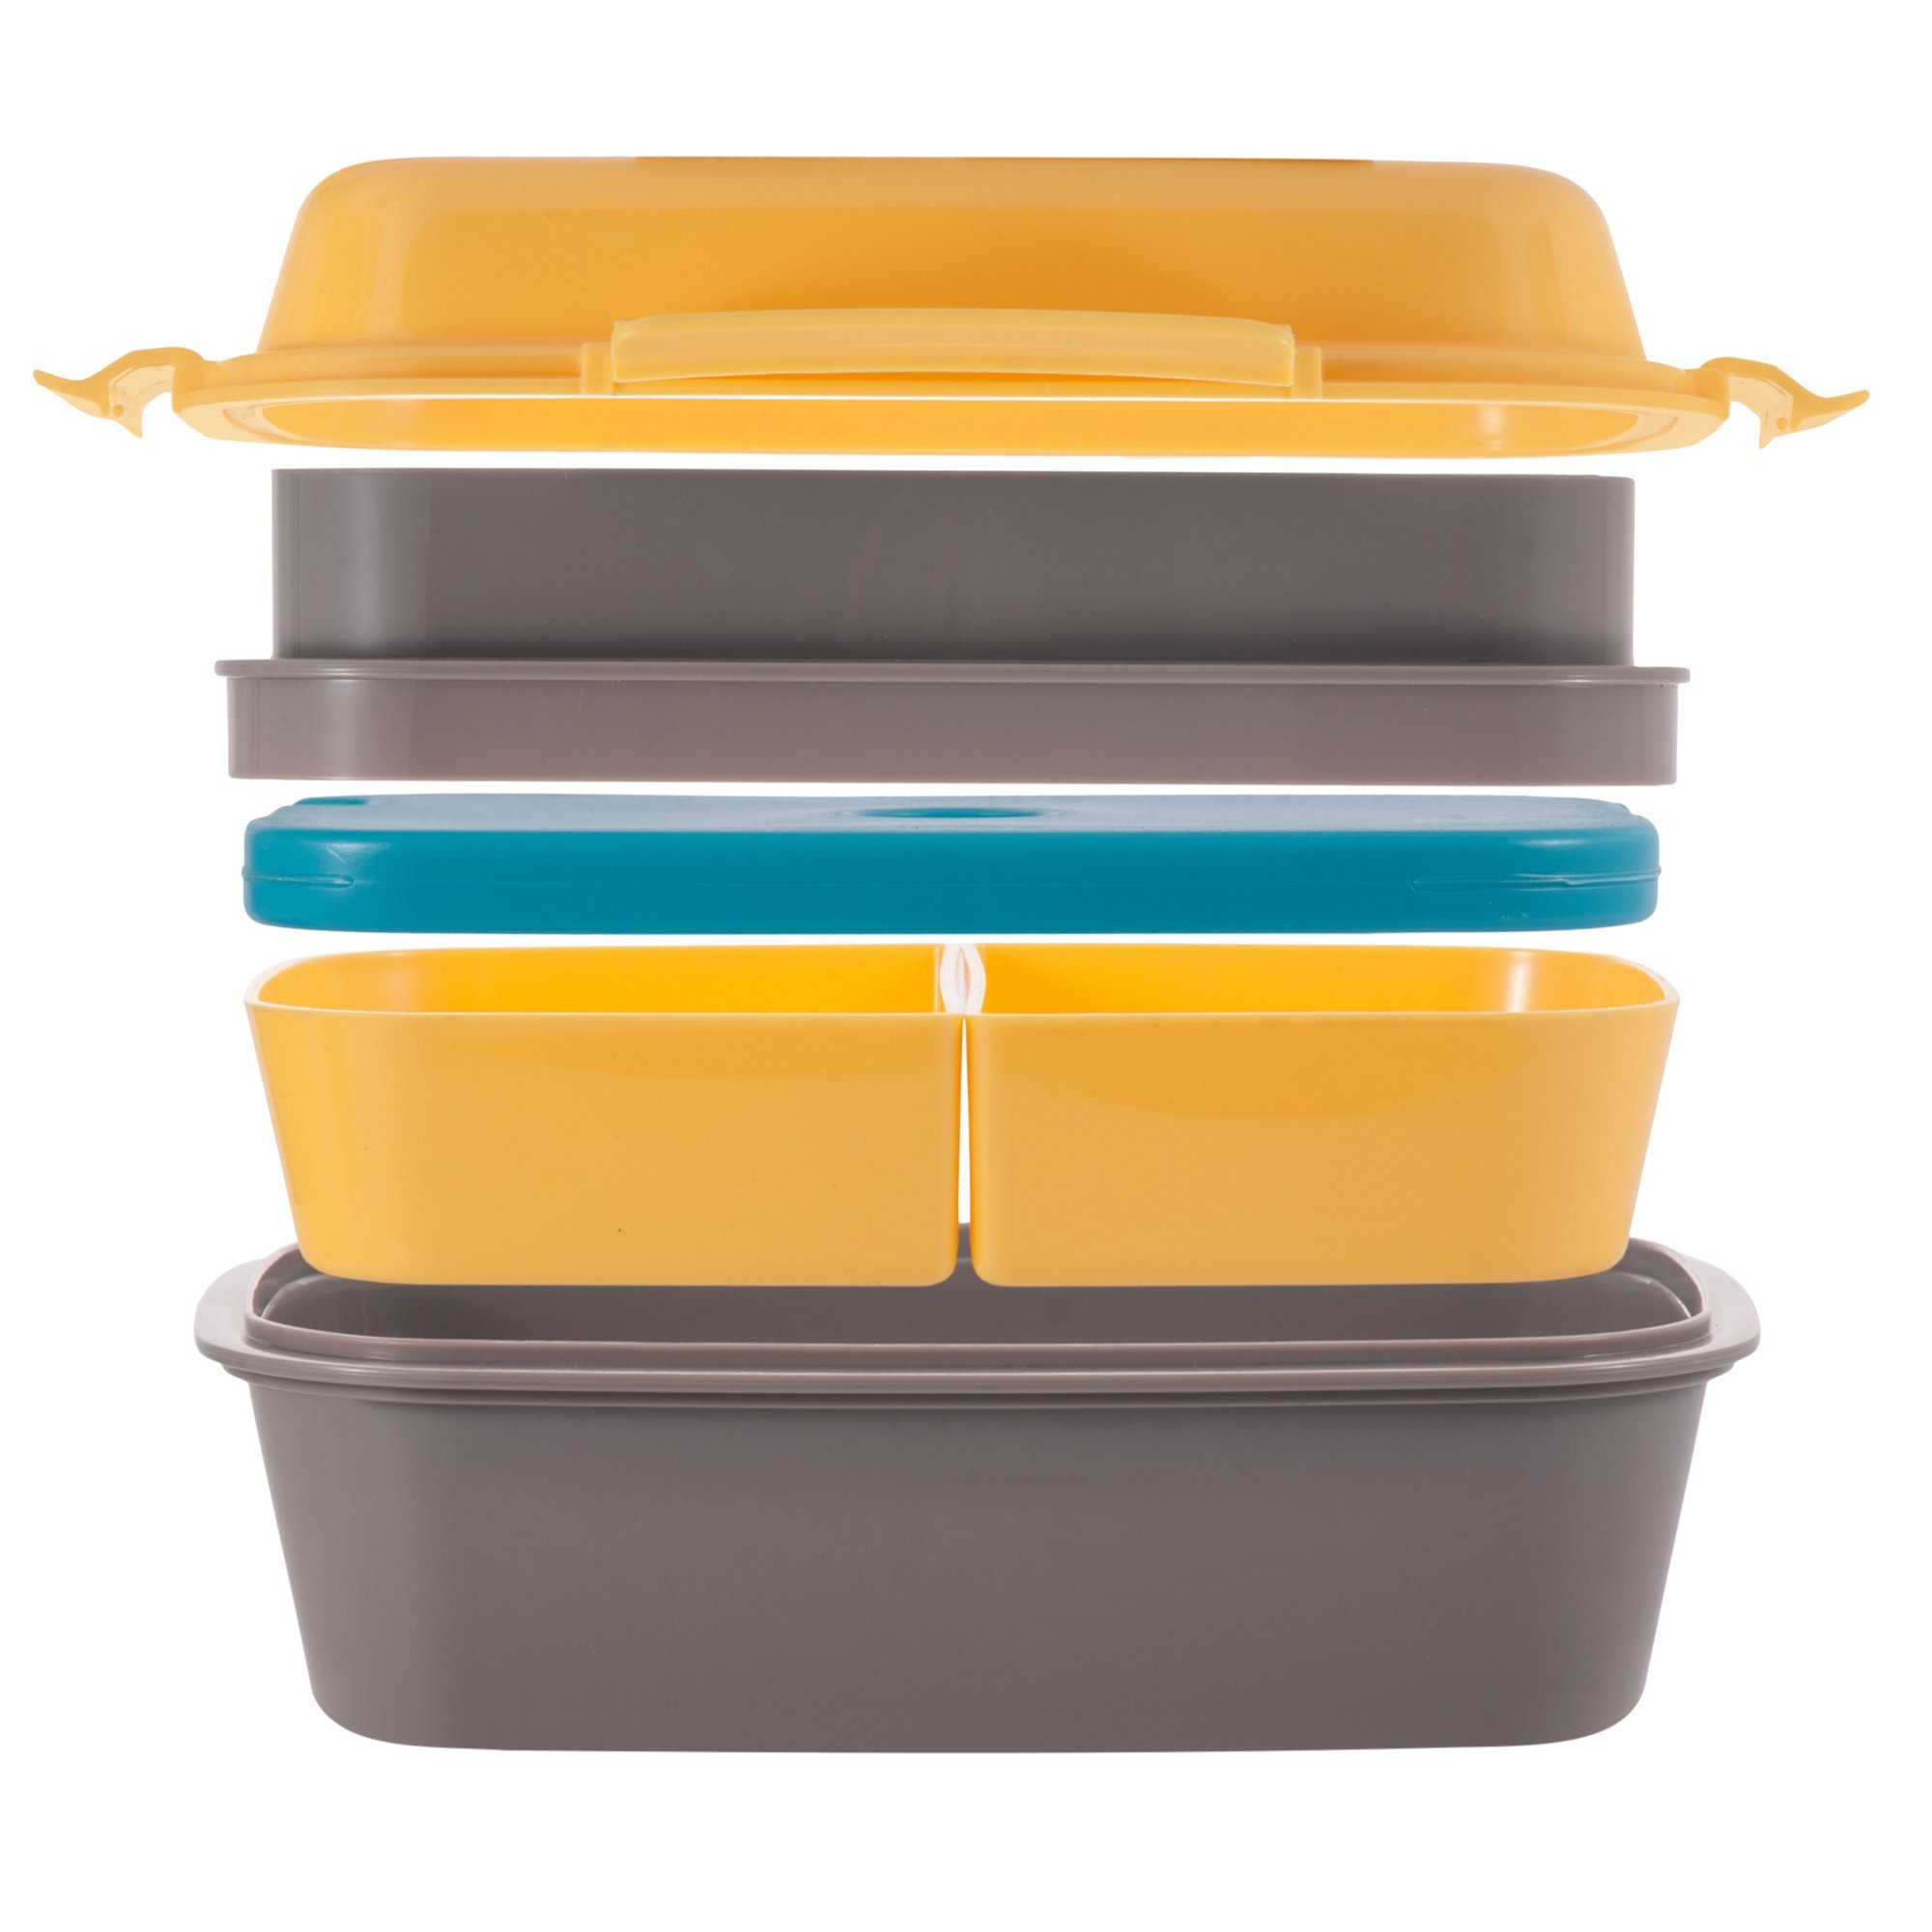 Ultimate Bento Box - Lunch Box for Kids & Adults - 100% Leakproof - Multi Compartment Food Container with Removable Containers and Ice Pack - Microwave & Dishwasher Safe